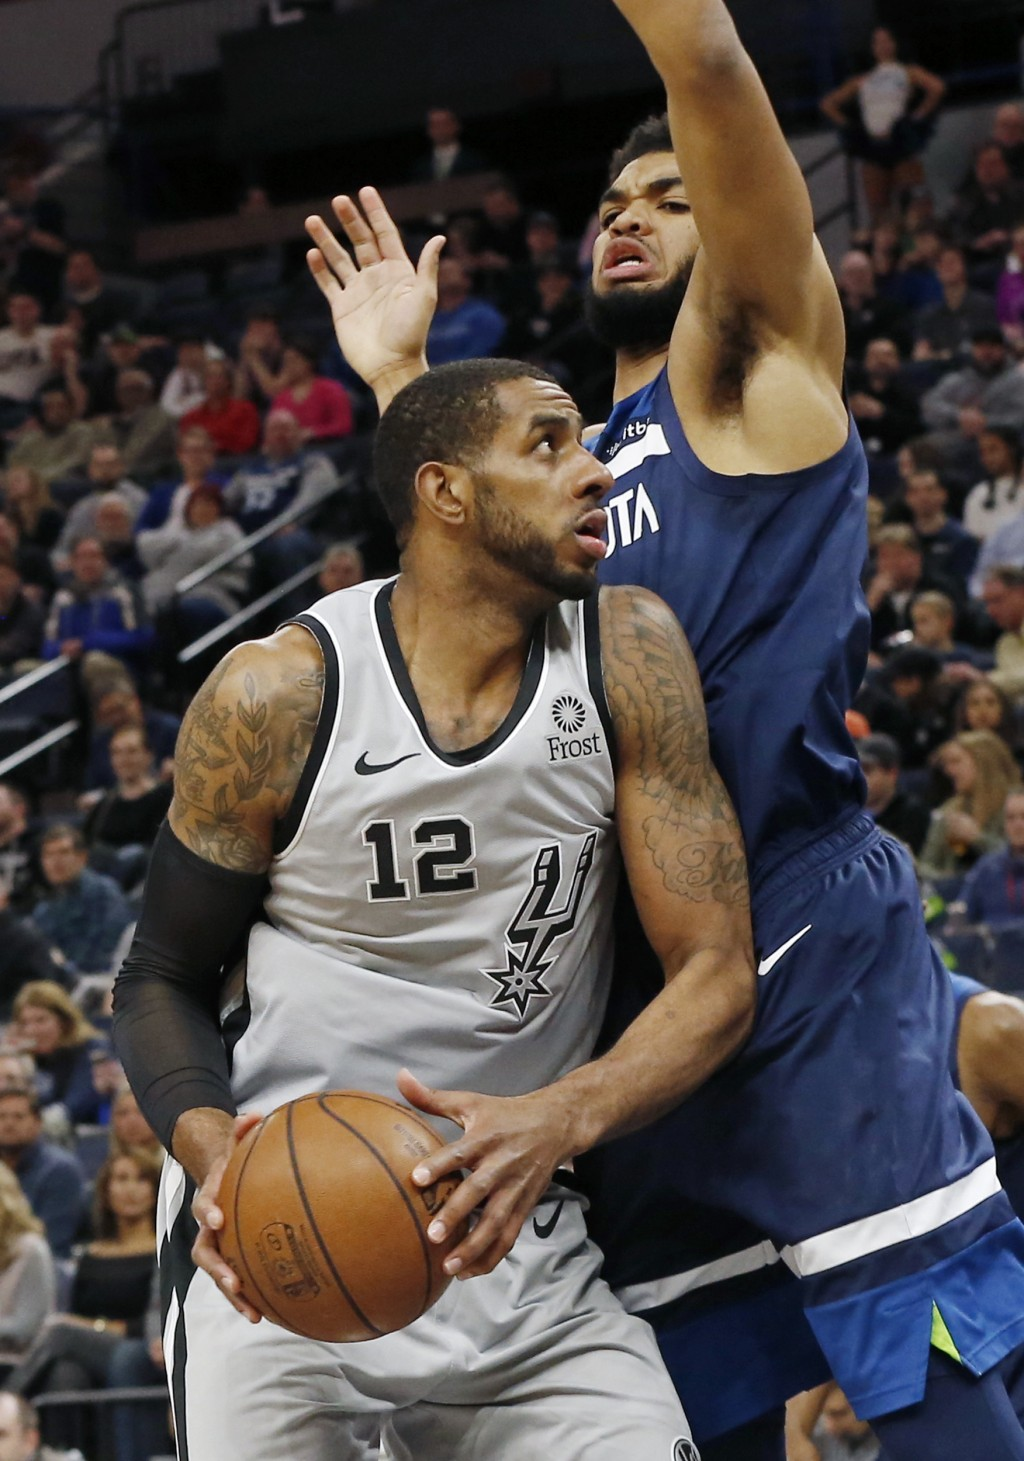 San Antonio Spurs' LaMarcus Aldridge, left, eyes the basket as Minnesota Timberwolves' Karl-Anthony Towns defends in the first half of an NBA basketba...